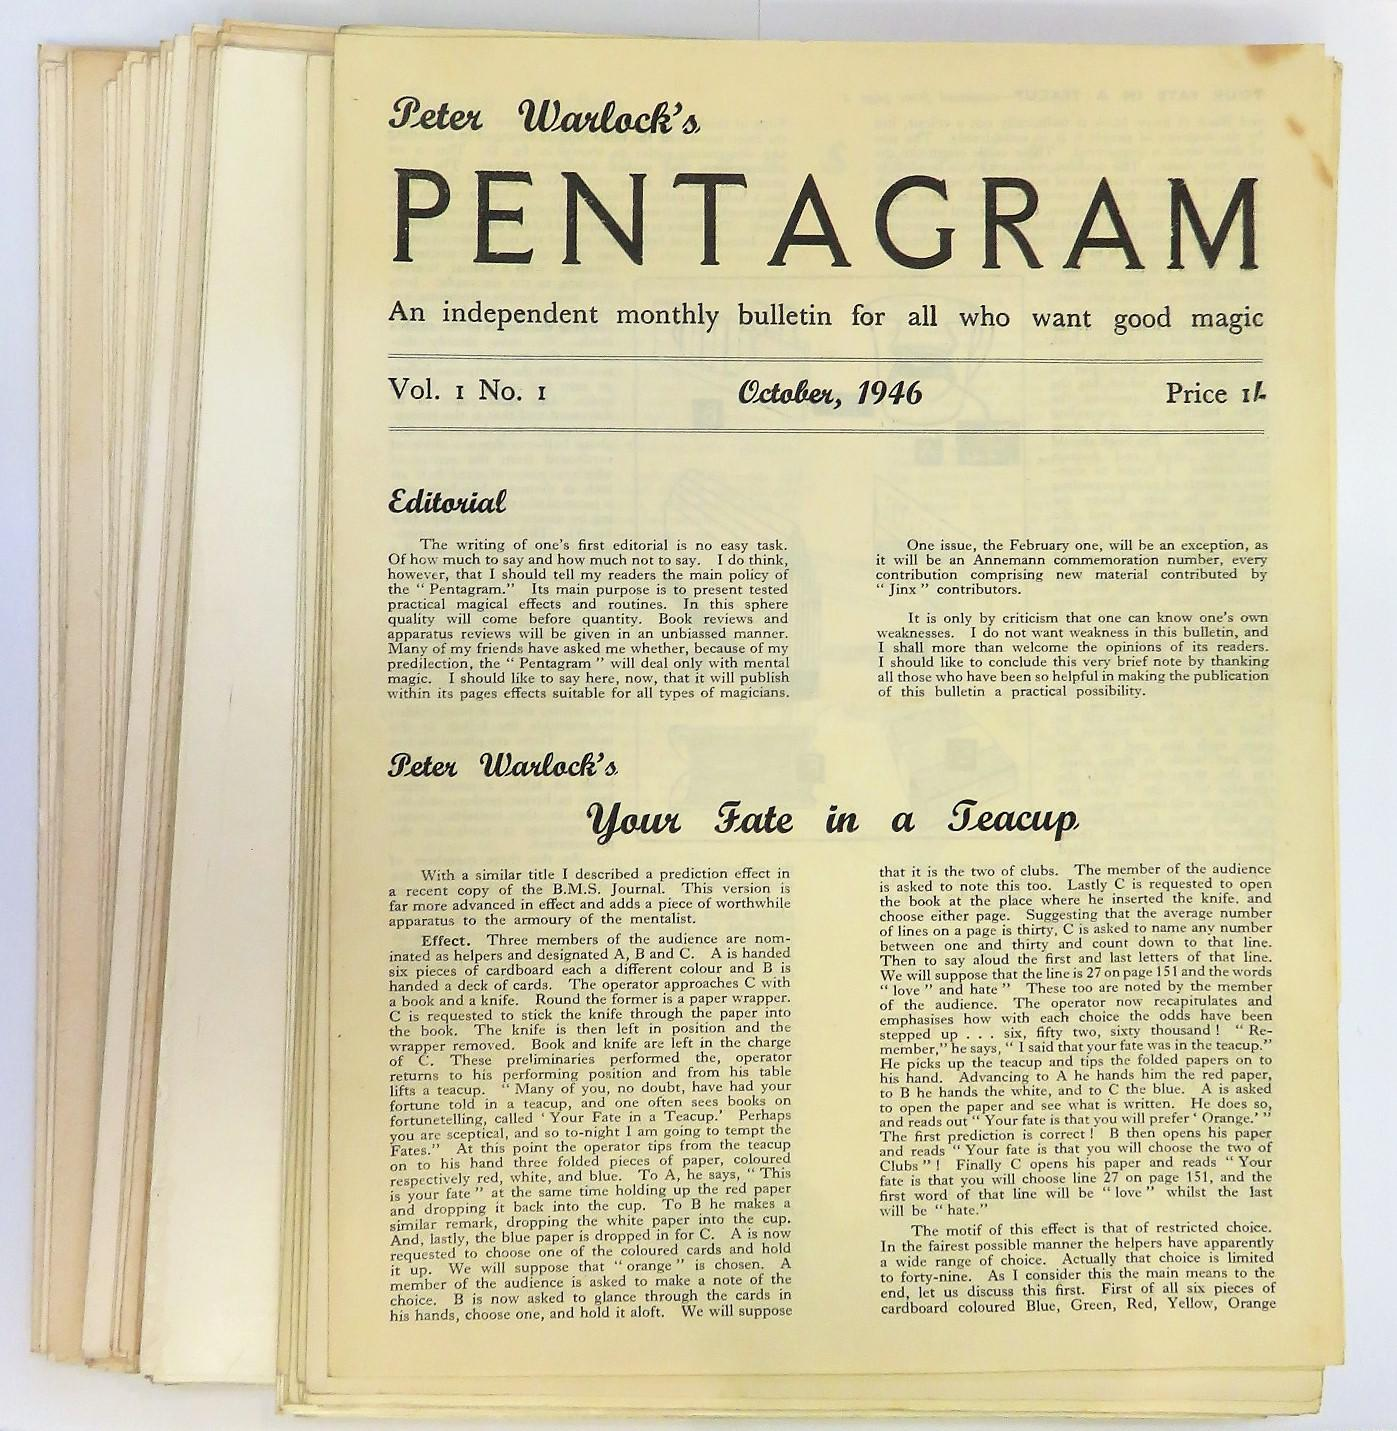 Peter Warlock's Pentagram Magazine from October 1946 through to September 1950 housed in a case